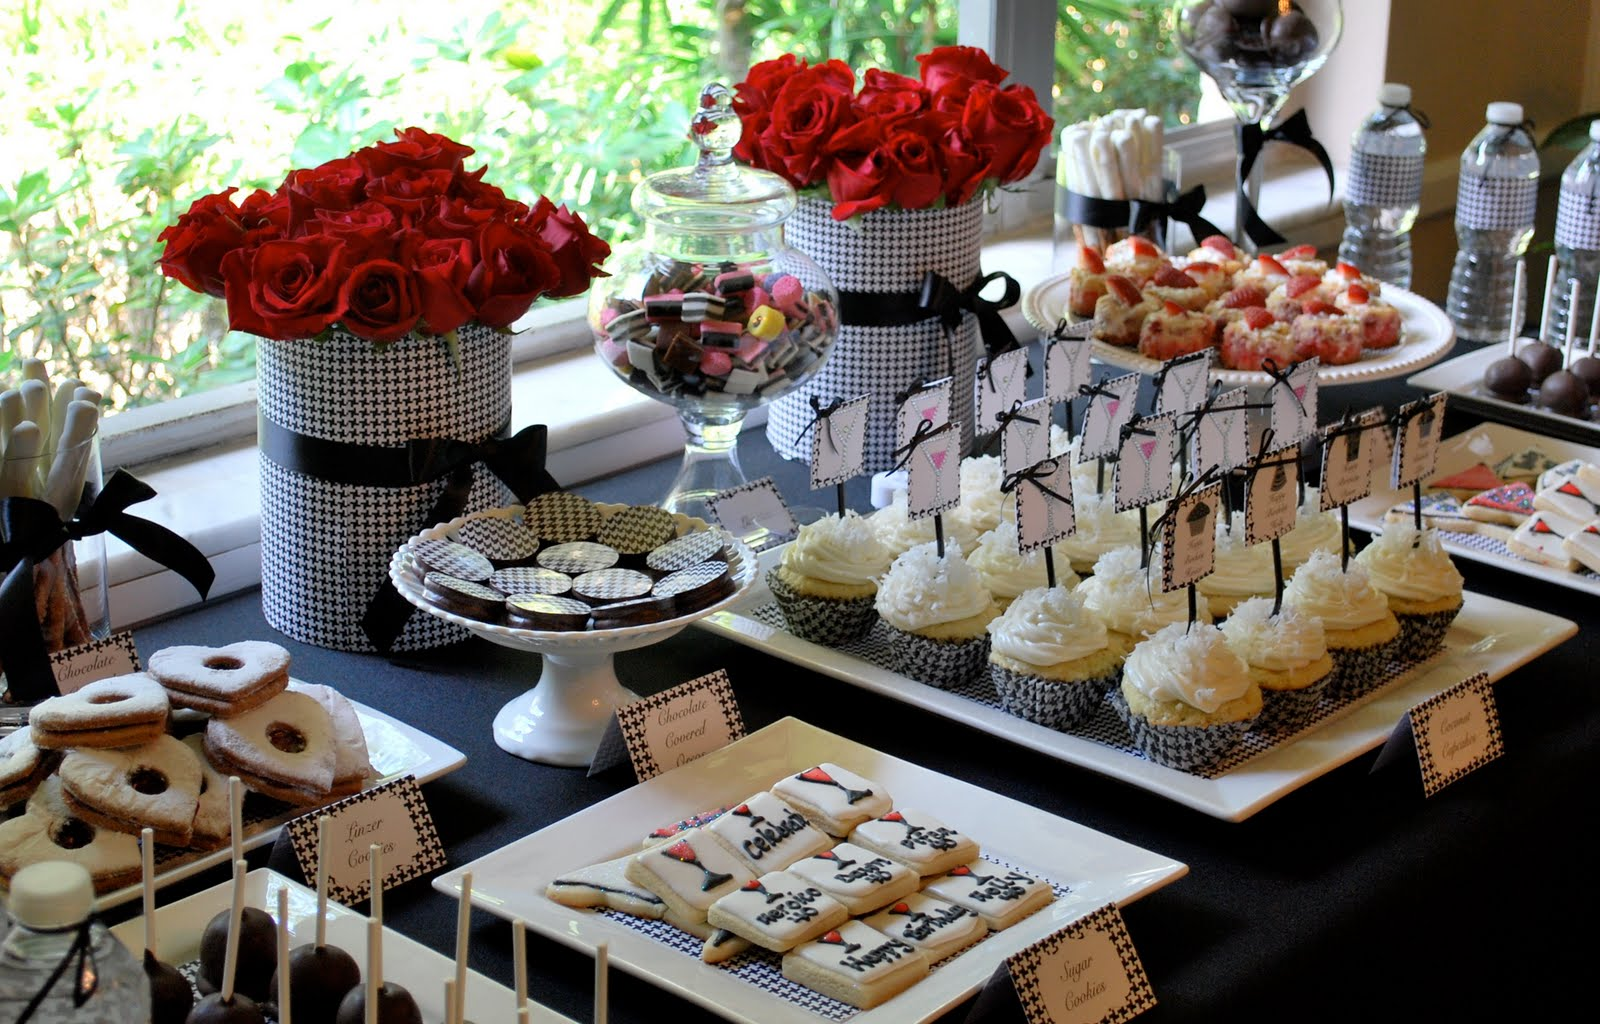 Dessert Candy Buffet Station Kid Cupcakes Cookie Party